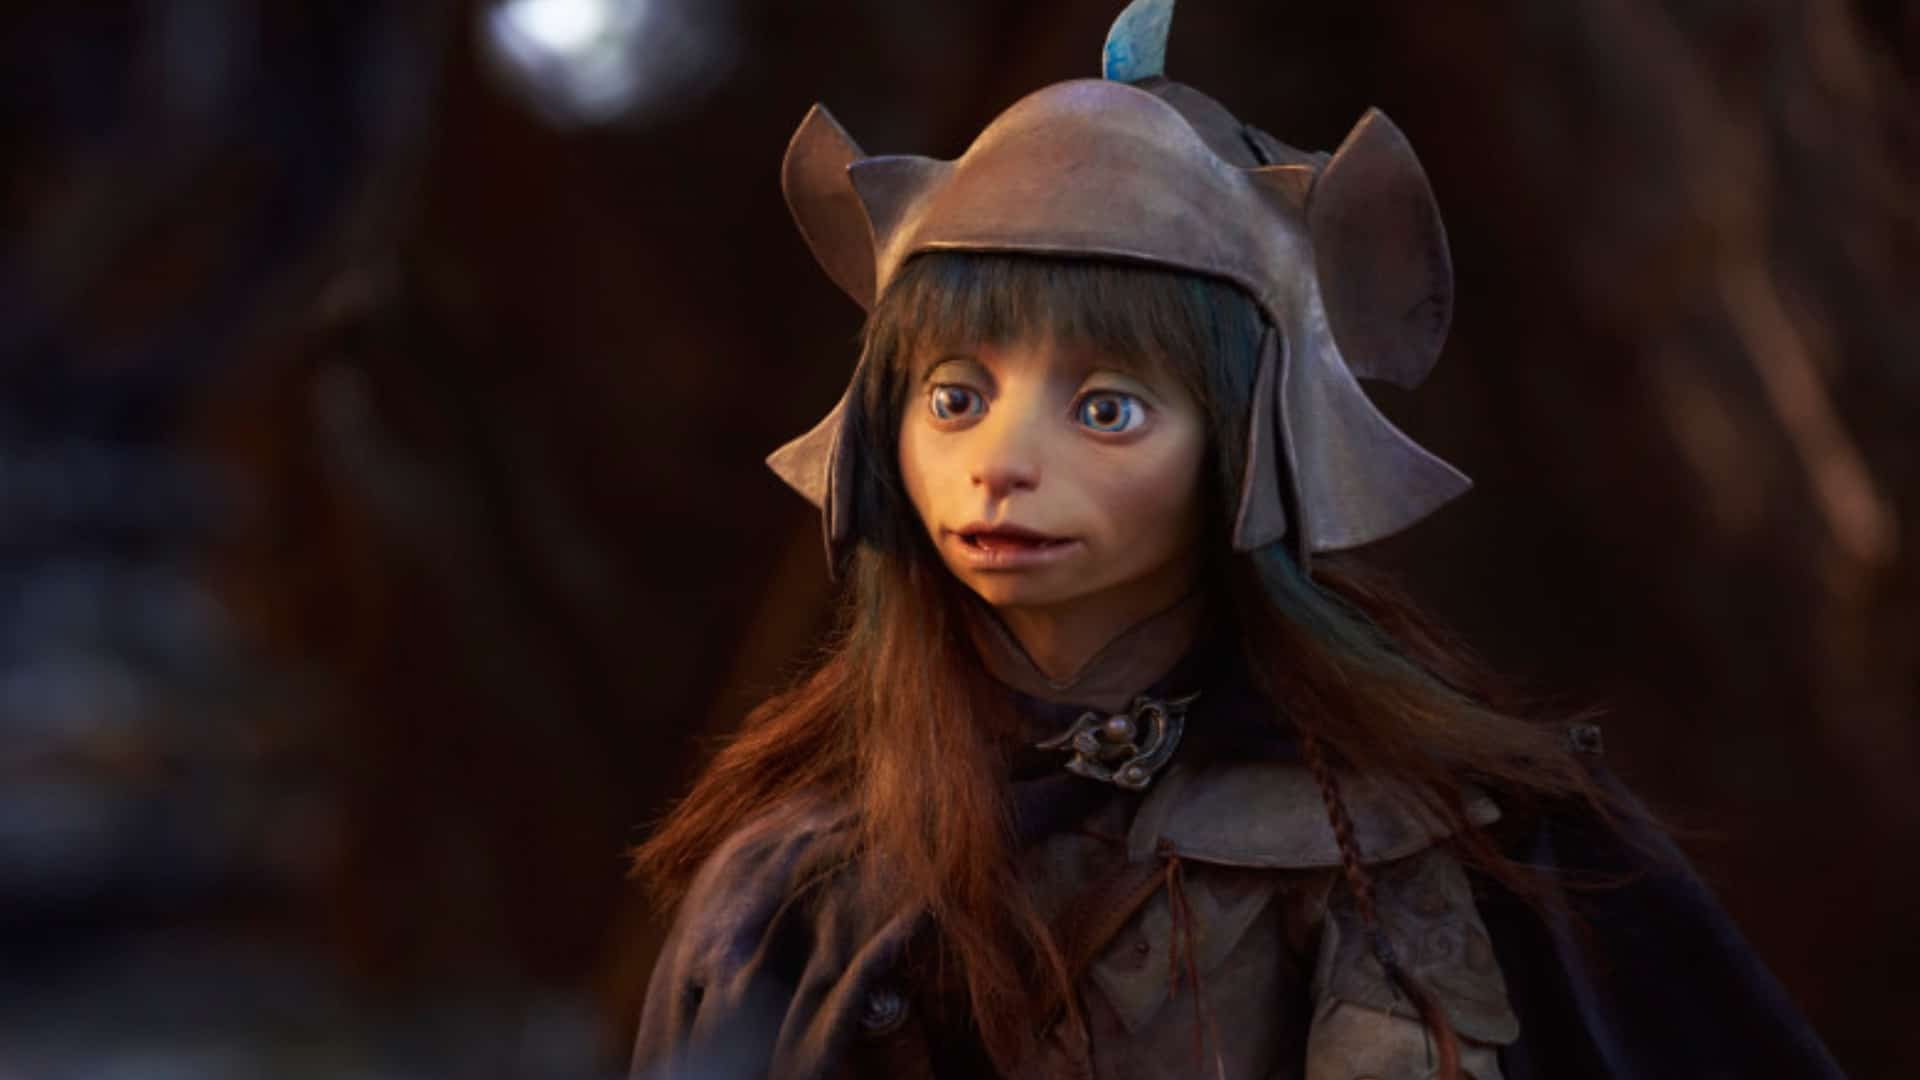 Netflix's Dark Crystal Prequel Trailer Released